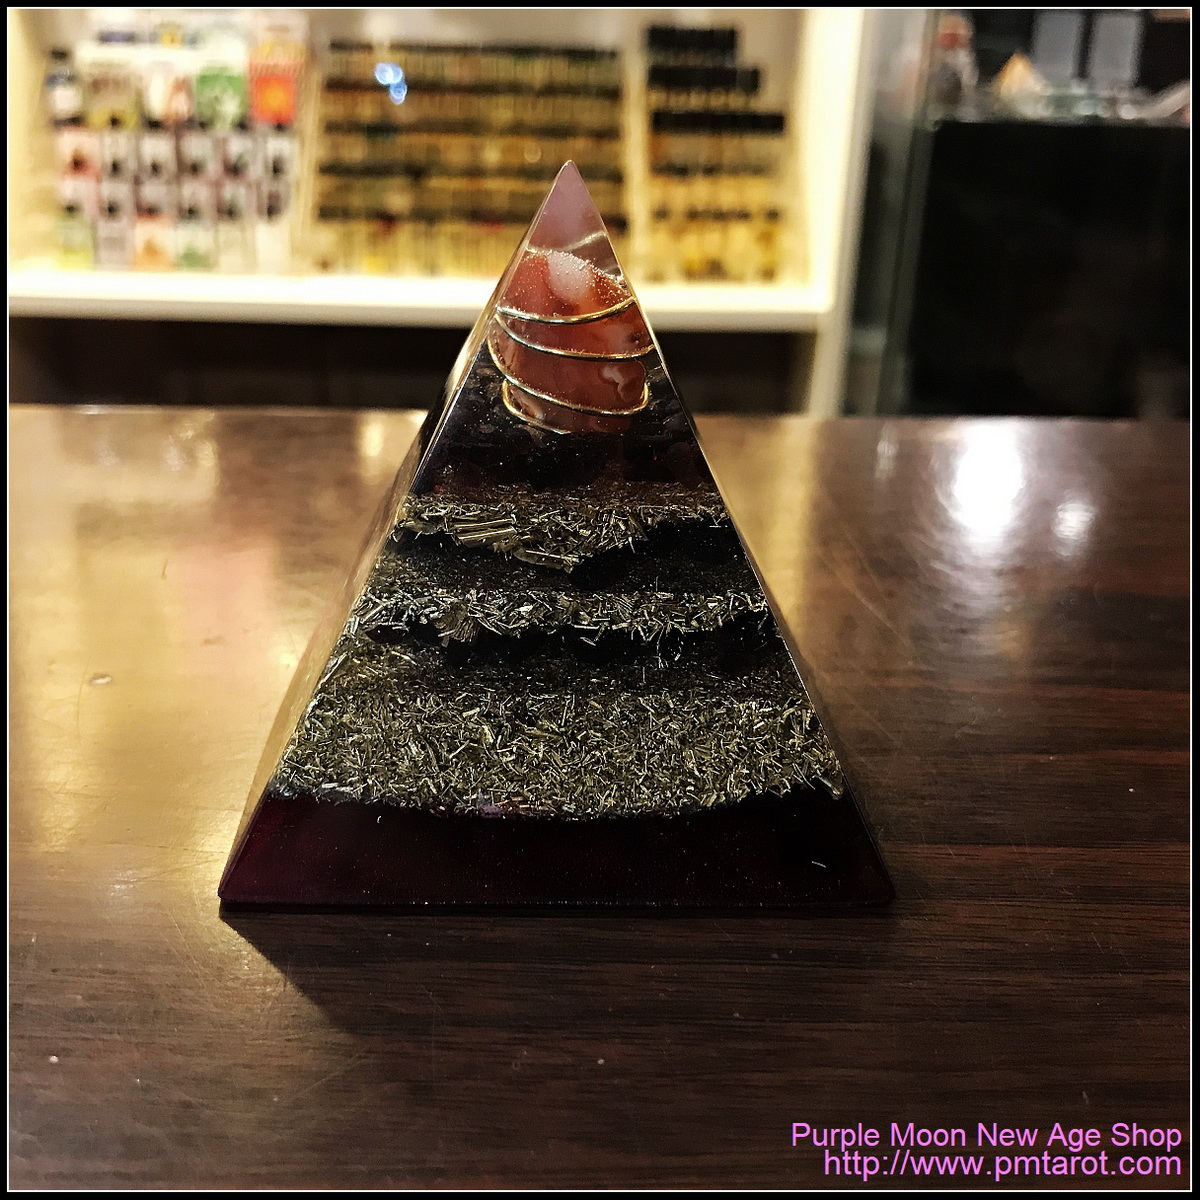 Avalon Magick x Oplusnet - Carnelian High Quality Orgonite Pyramid